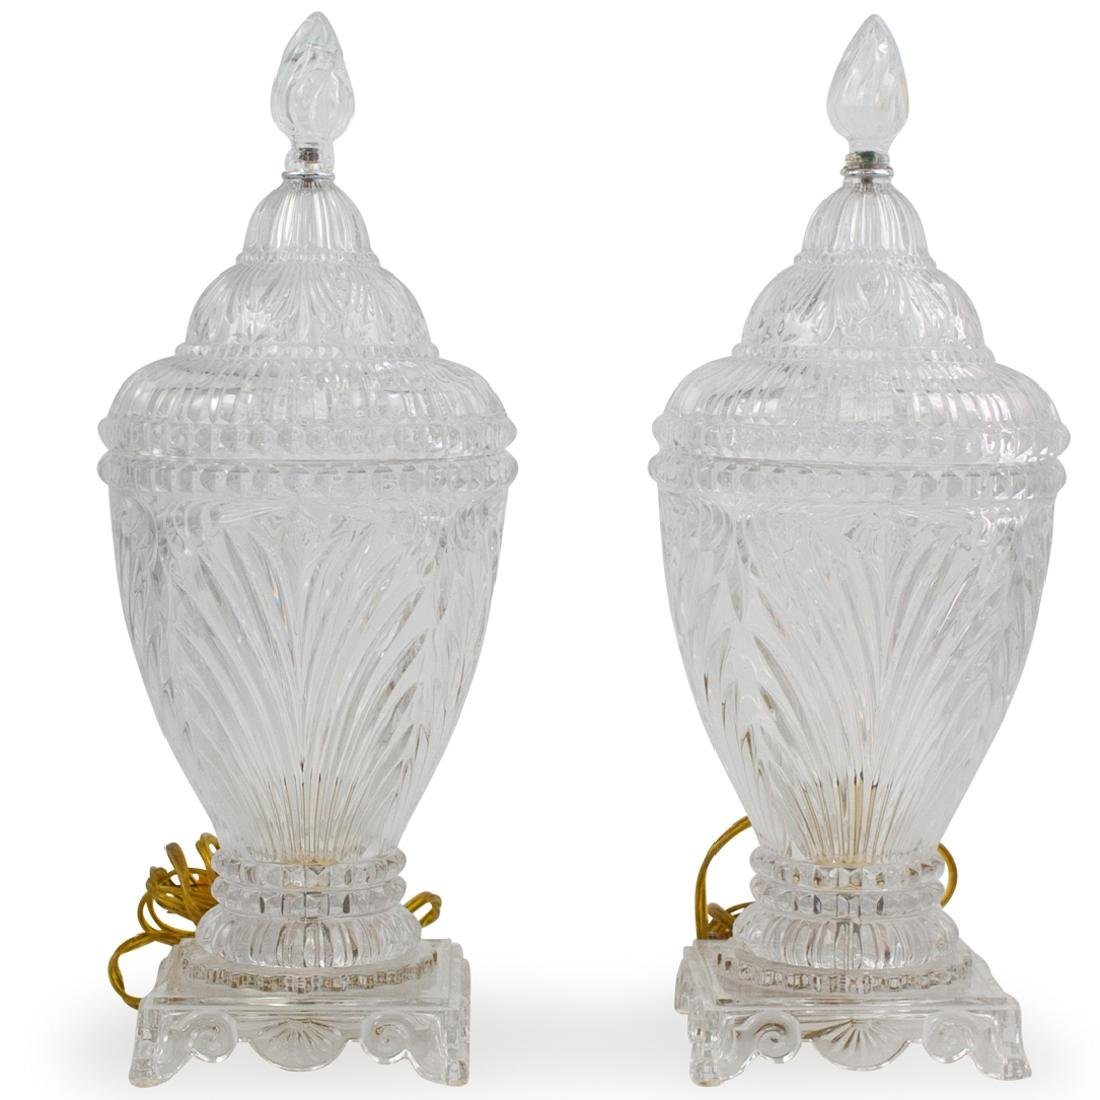 Pair of Cut Crystal Urn Lamps